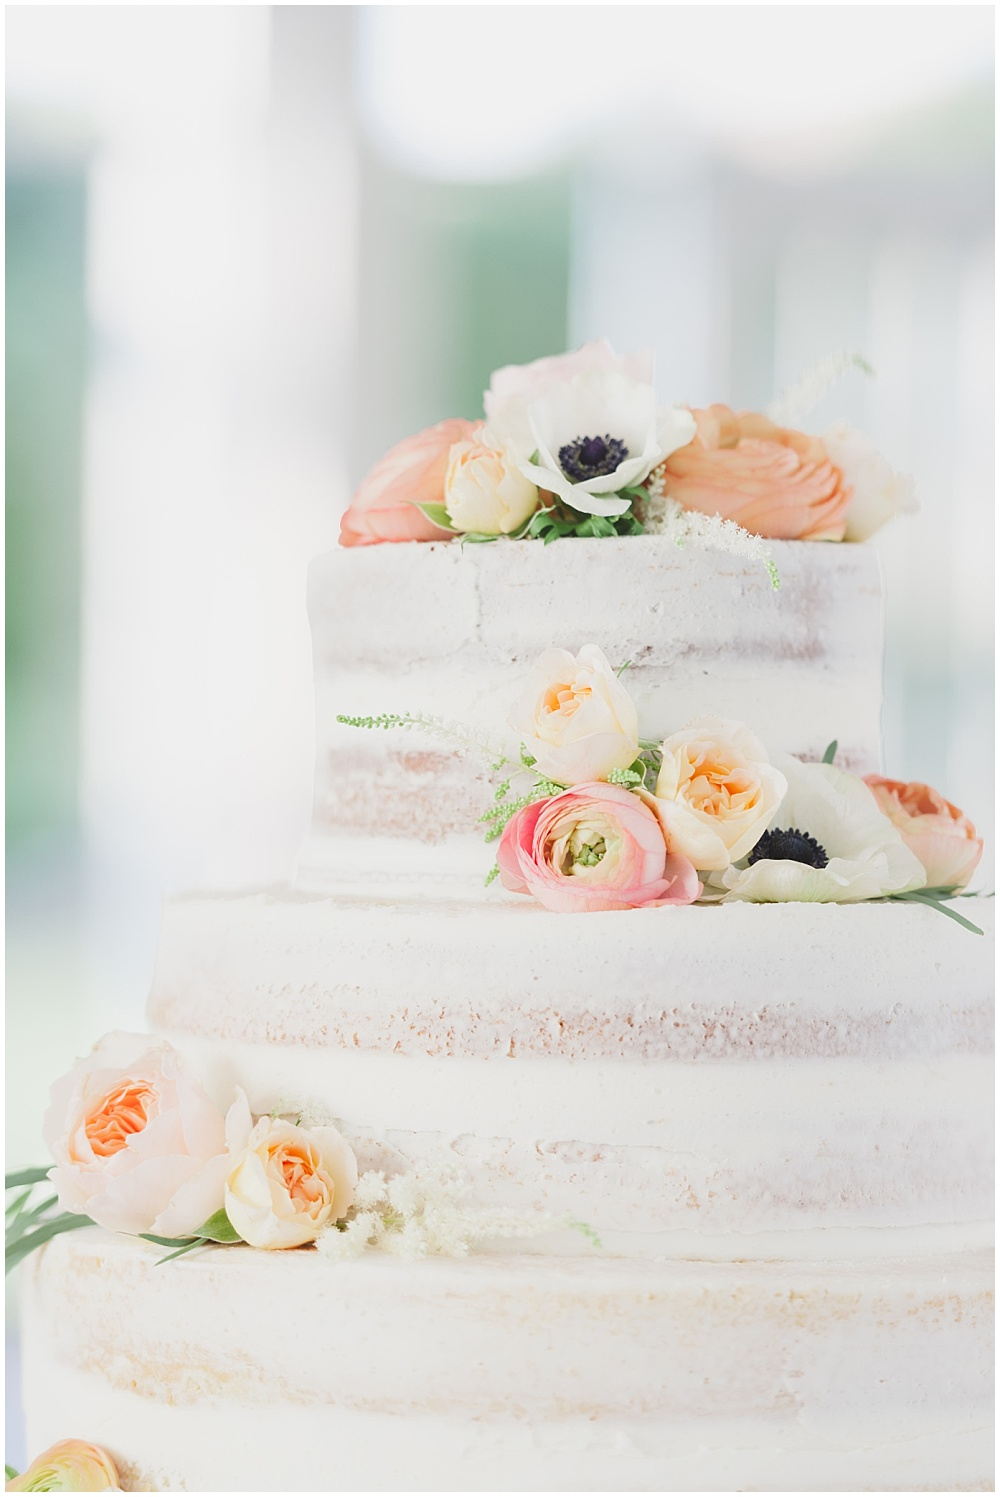 Elegant naked cake with spring flowers   Ritz Charles Garden Pavilion Wedding by Stacy Able Photography & Jessica Dum Wedding Coordination